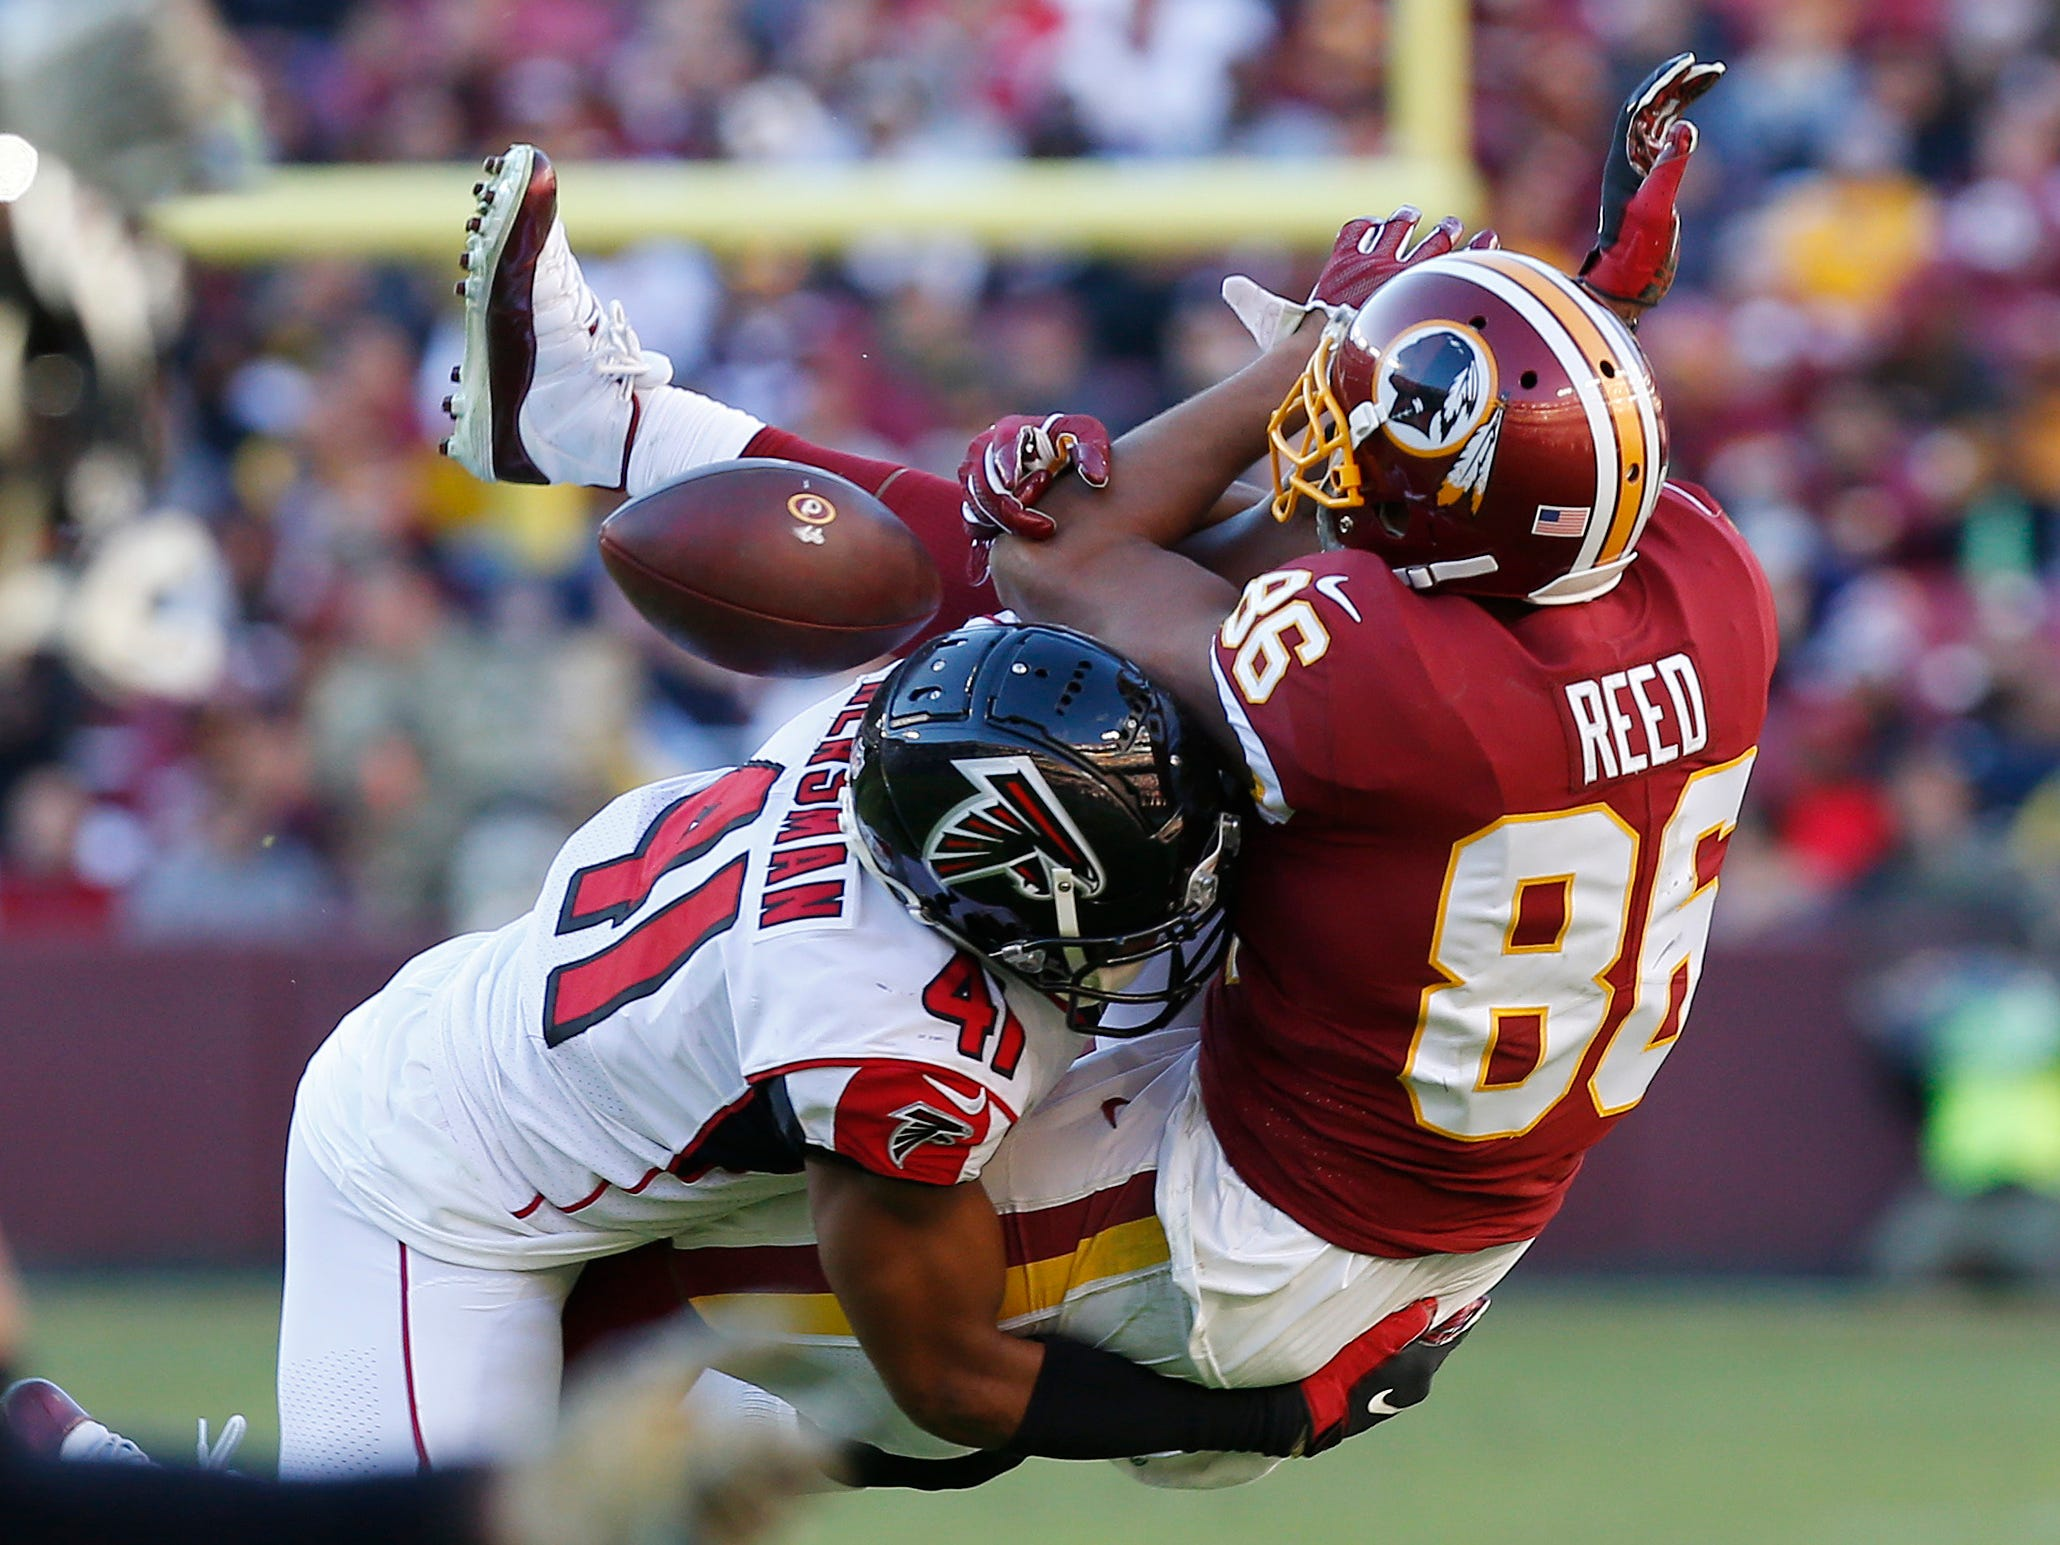 Atlanta Falcons defensive back Sharrod Neasman (41) breaks up a pass intended for Washington Redskins tight end Jordan Reed (86) in the third quarter at FedExField.